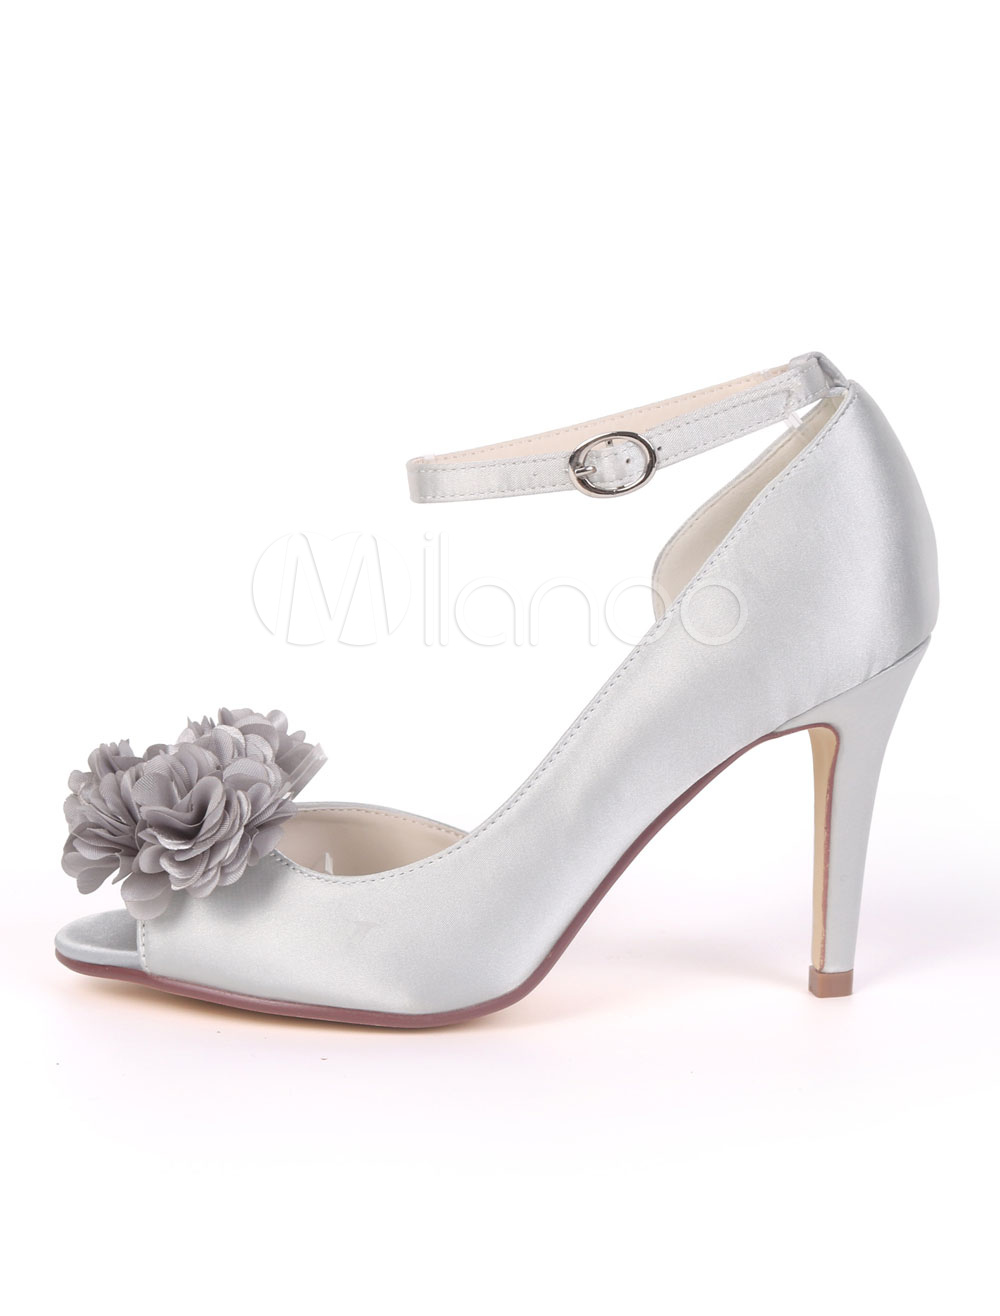 dbdc9577985f ... Ivory Wedding Shoes Satin Peep Toe Flower Ankle Strap Bridal Shoes  Women High Heels-No. 12. 50%OFF. Color Silver